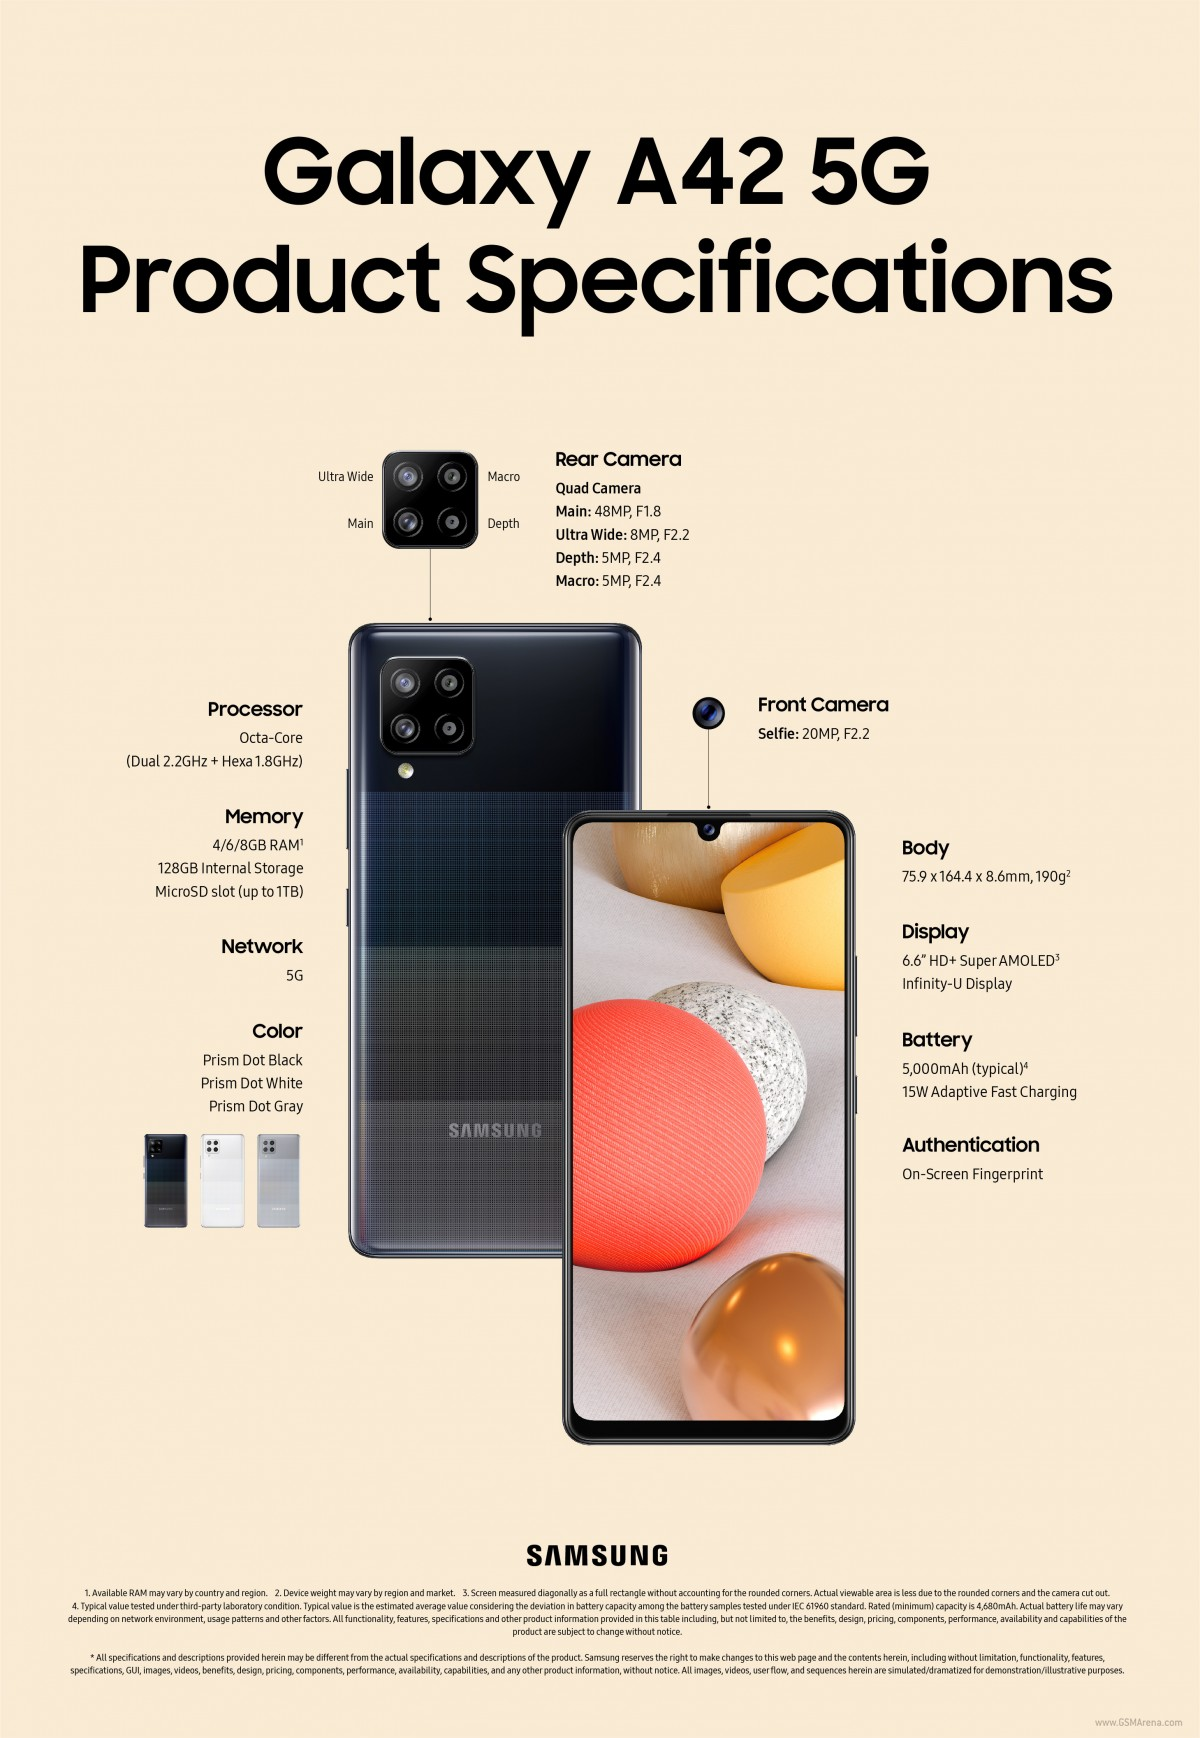 Galaxy A42 5G: Samsung reveals full specs in an infographic 4